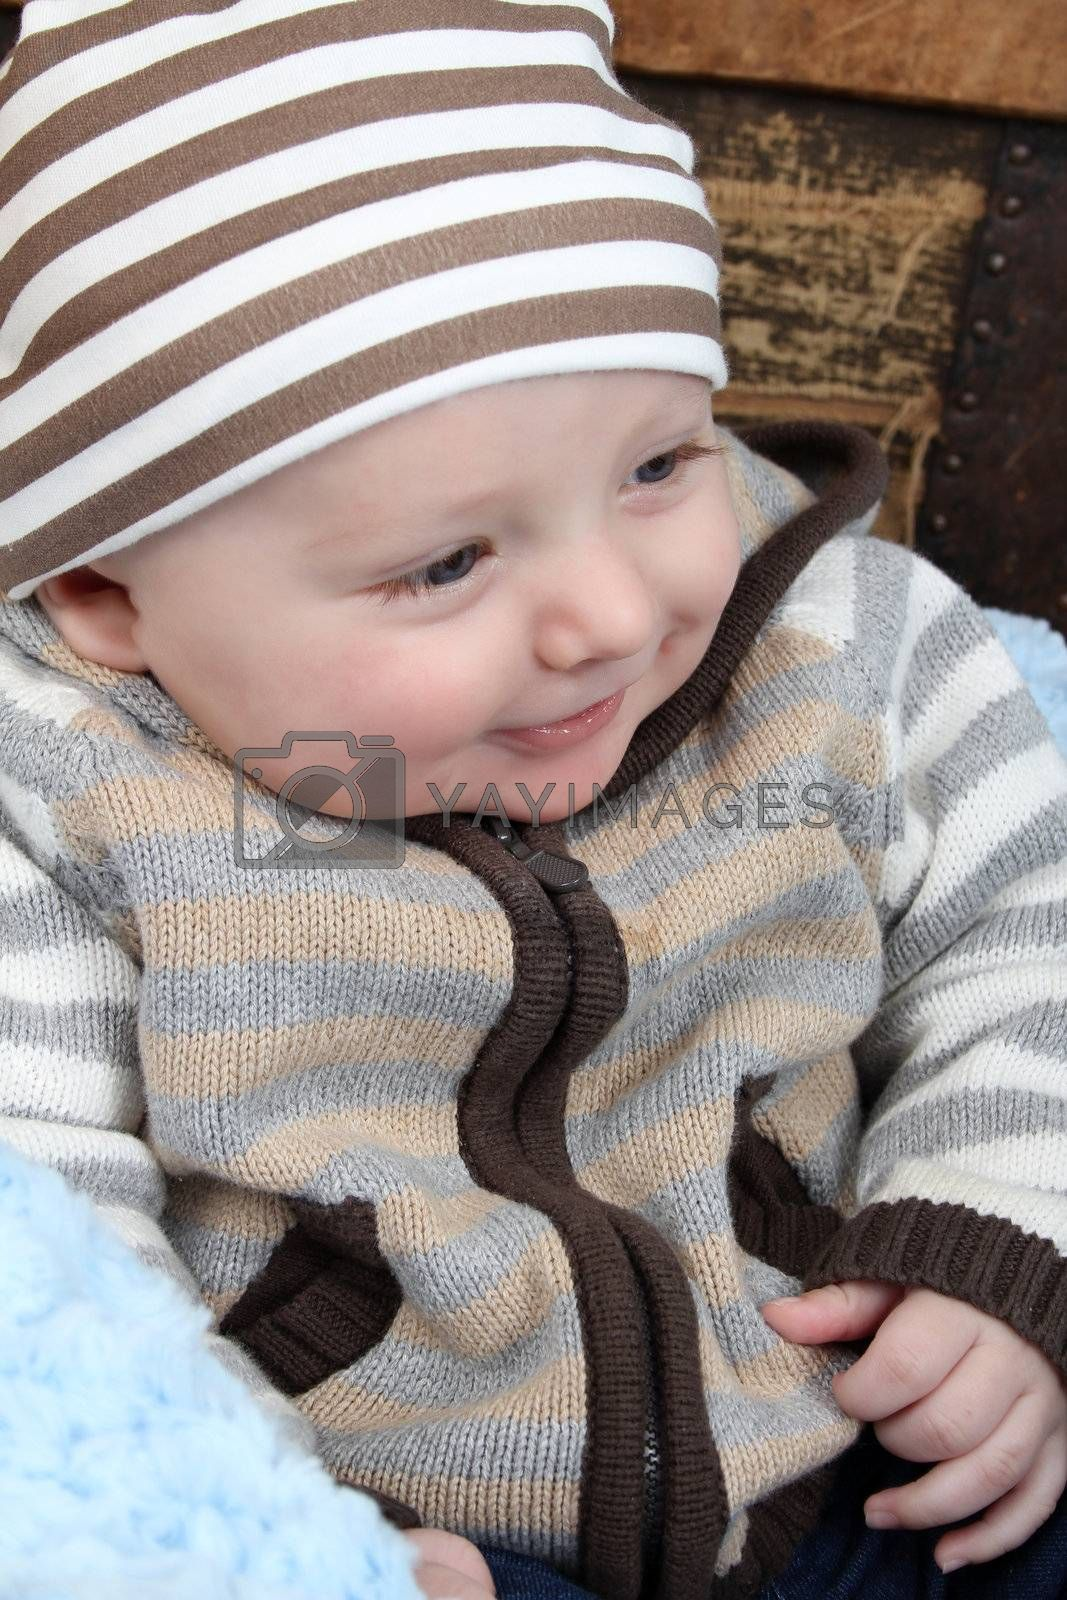 Smiling baby by vanell